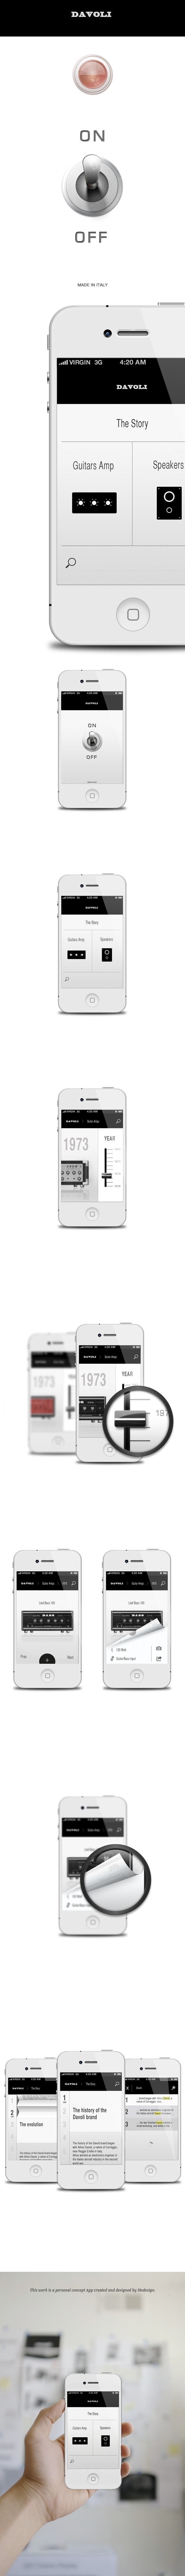 Davoli iPhone App by Stefano Tirloni, via Behance